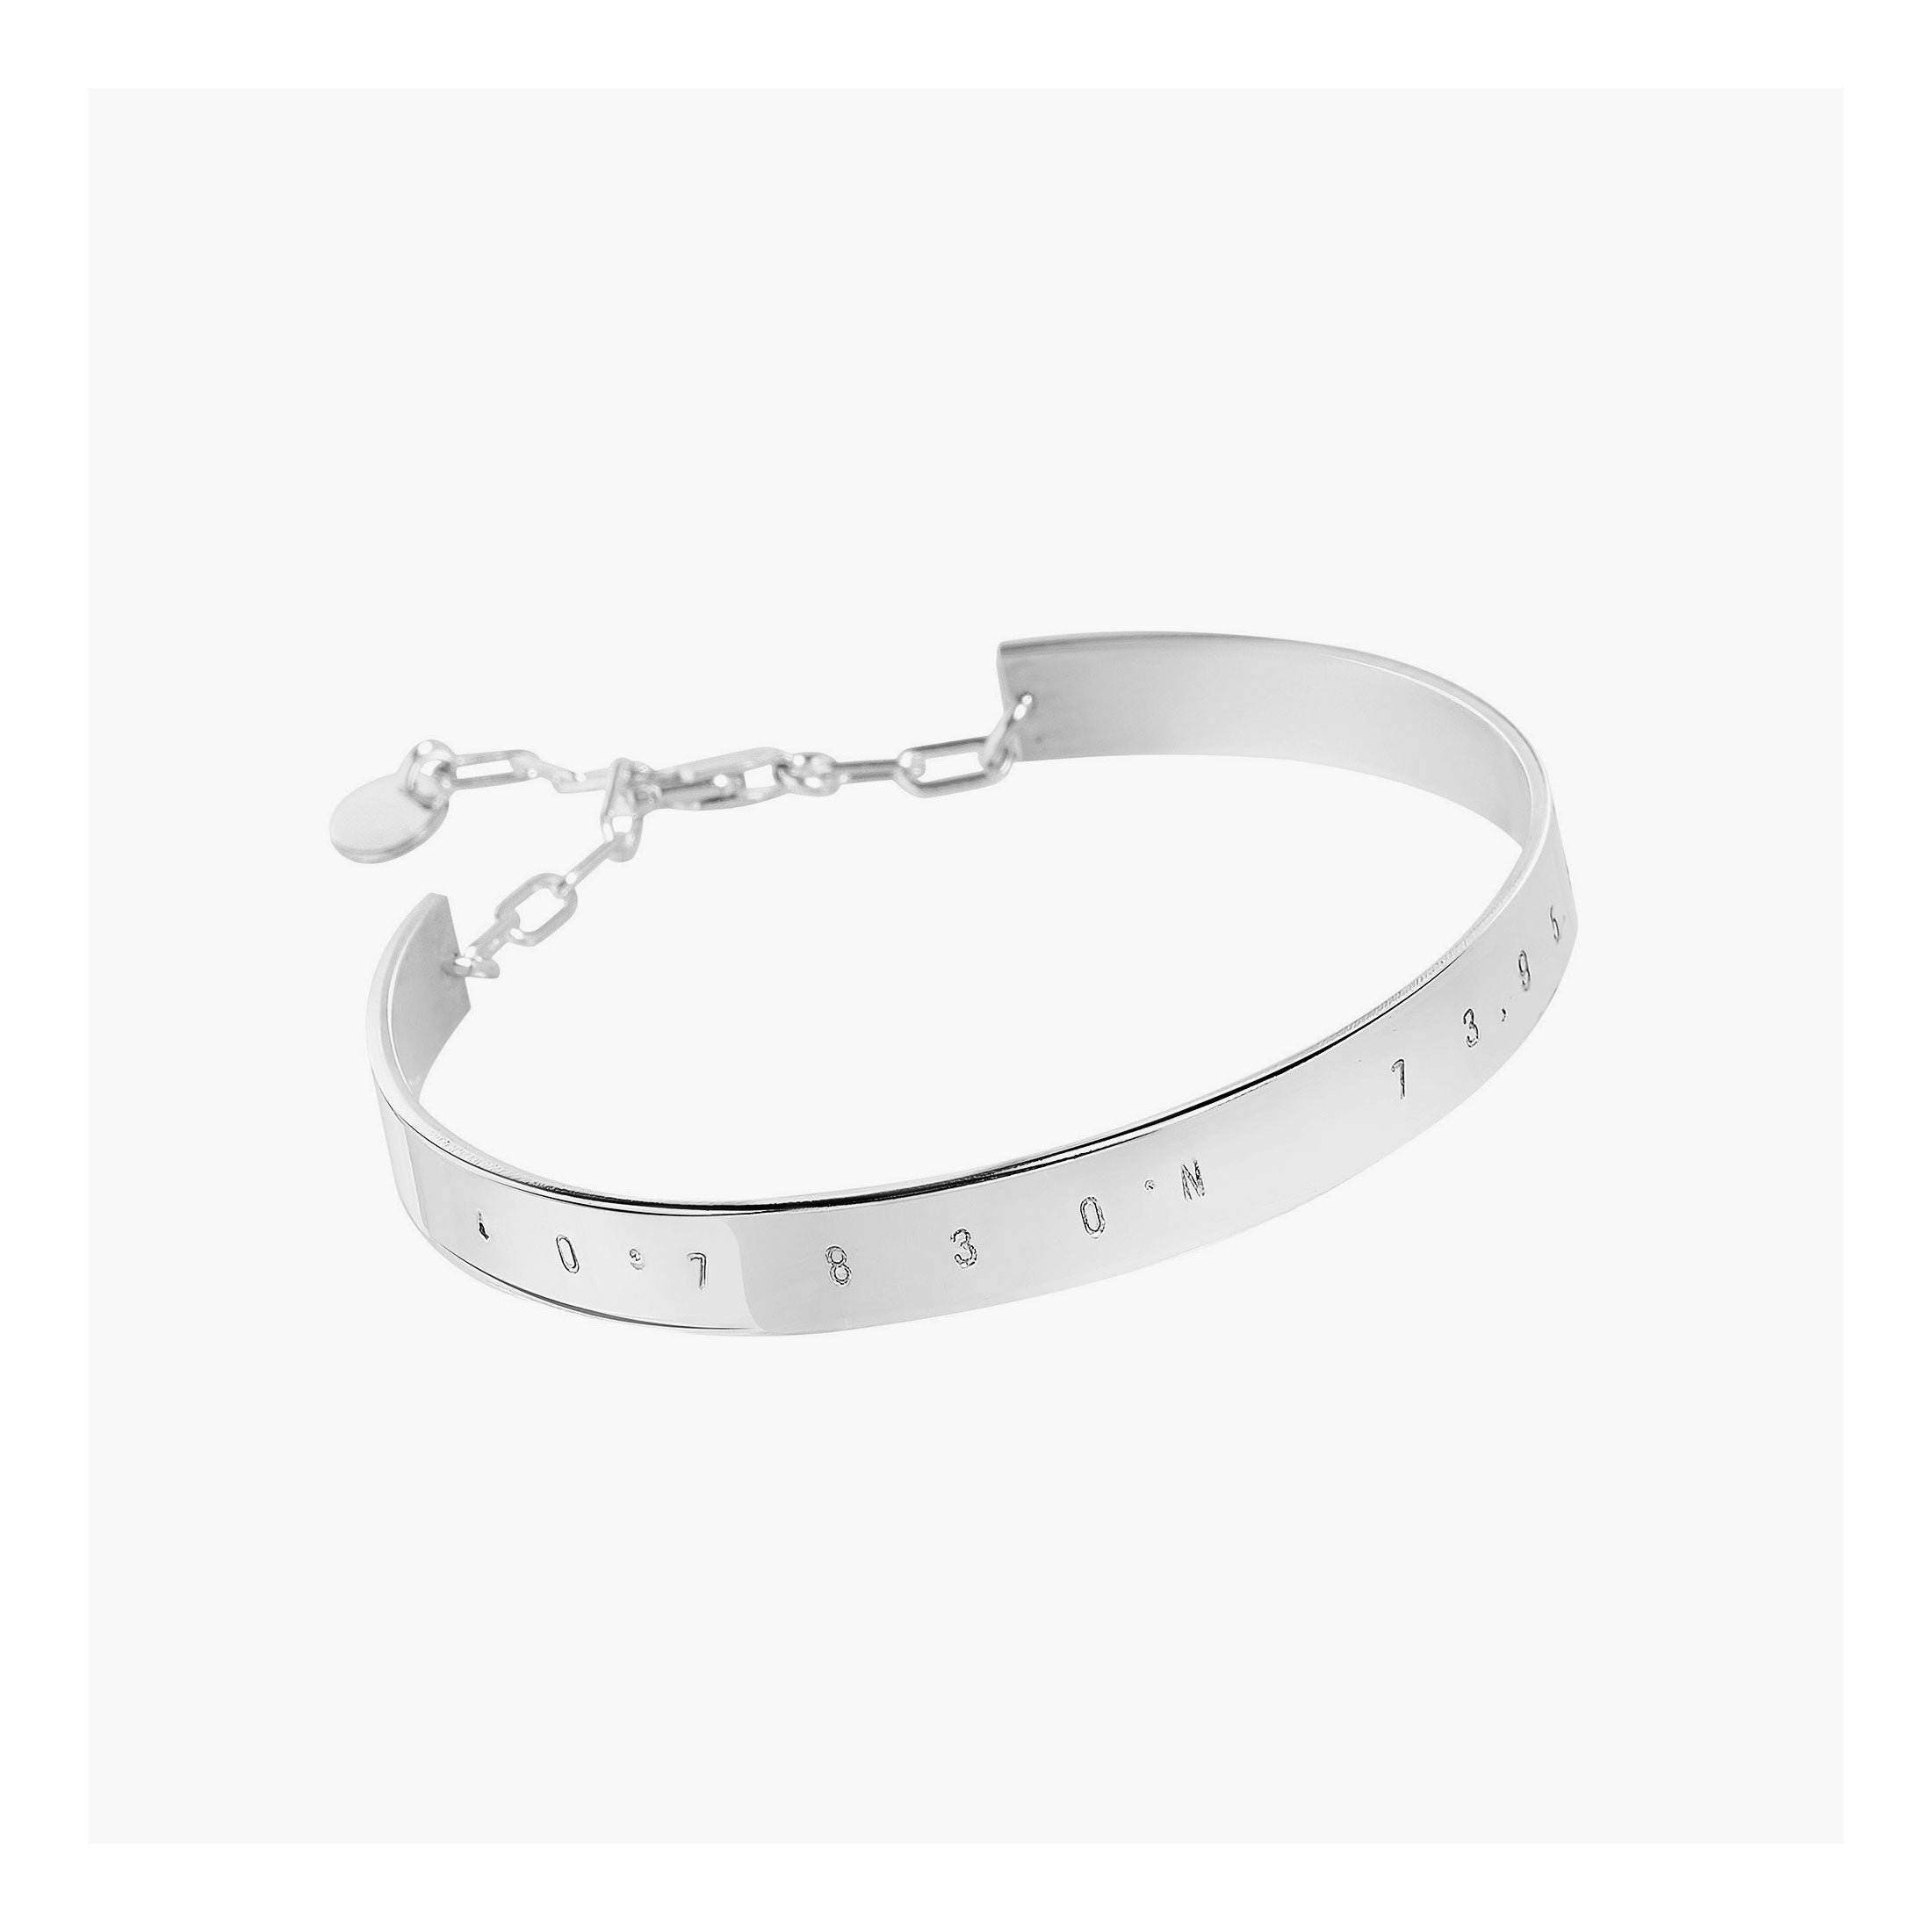 Custom made Coordinates bracelet with link chain in solid sterling silver